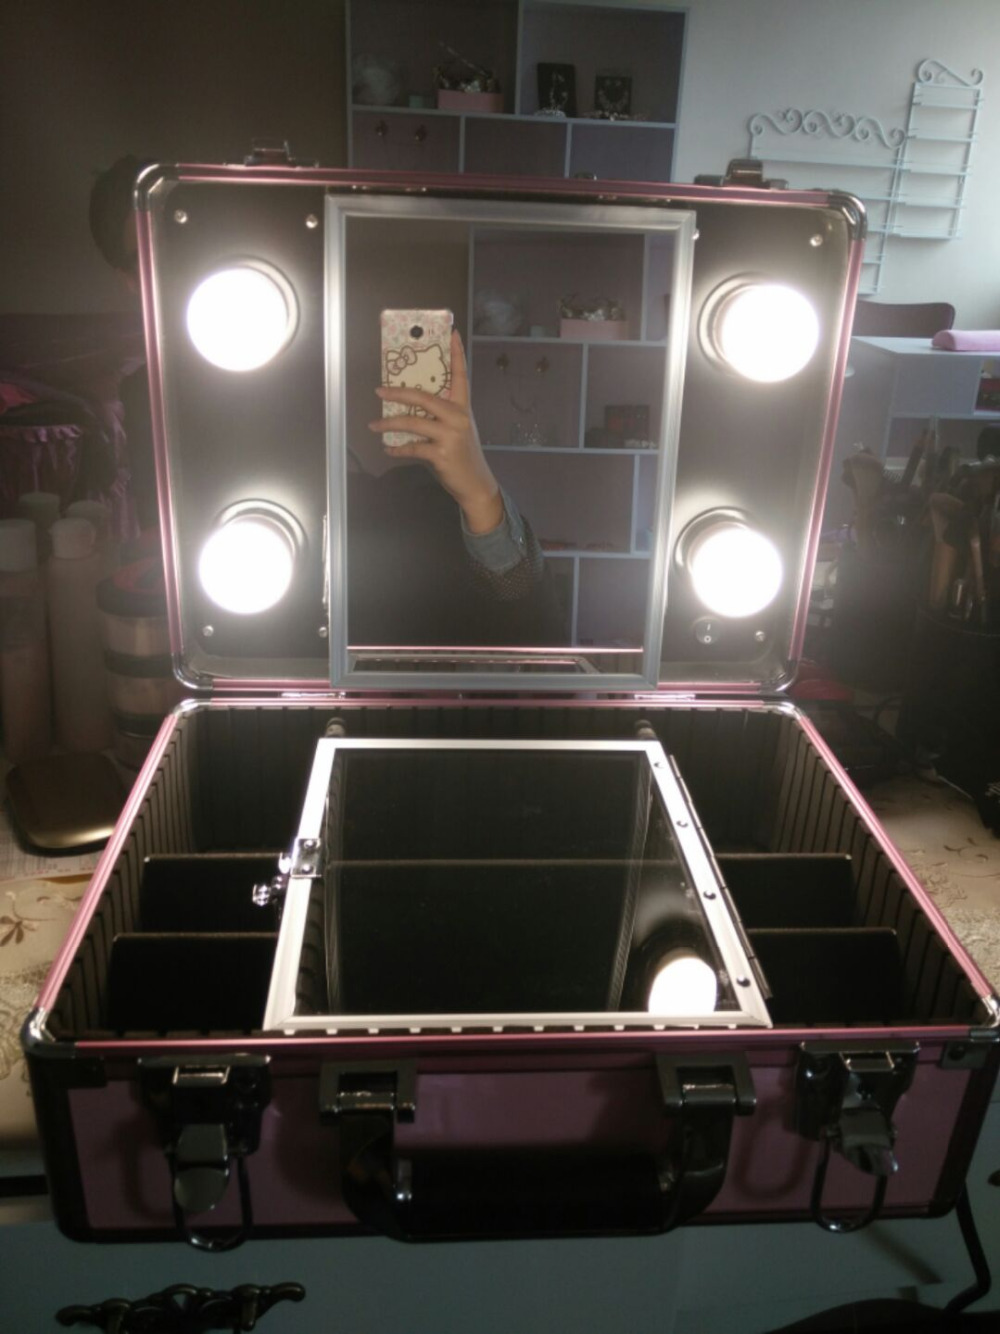 2016 New Type Make up Vanity Box Case with LED Lights Beauty Kit Gift Set  MirrorOnline Get Cheap Beauty Case Vanity Box  Aliexpress com   Alibaba  . Light Up Vanity Set. Home Design Ideas